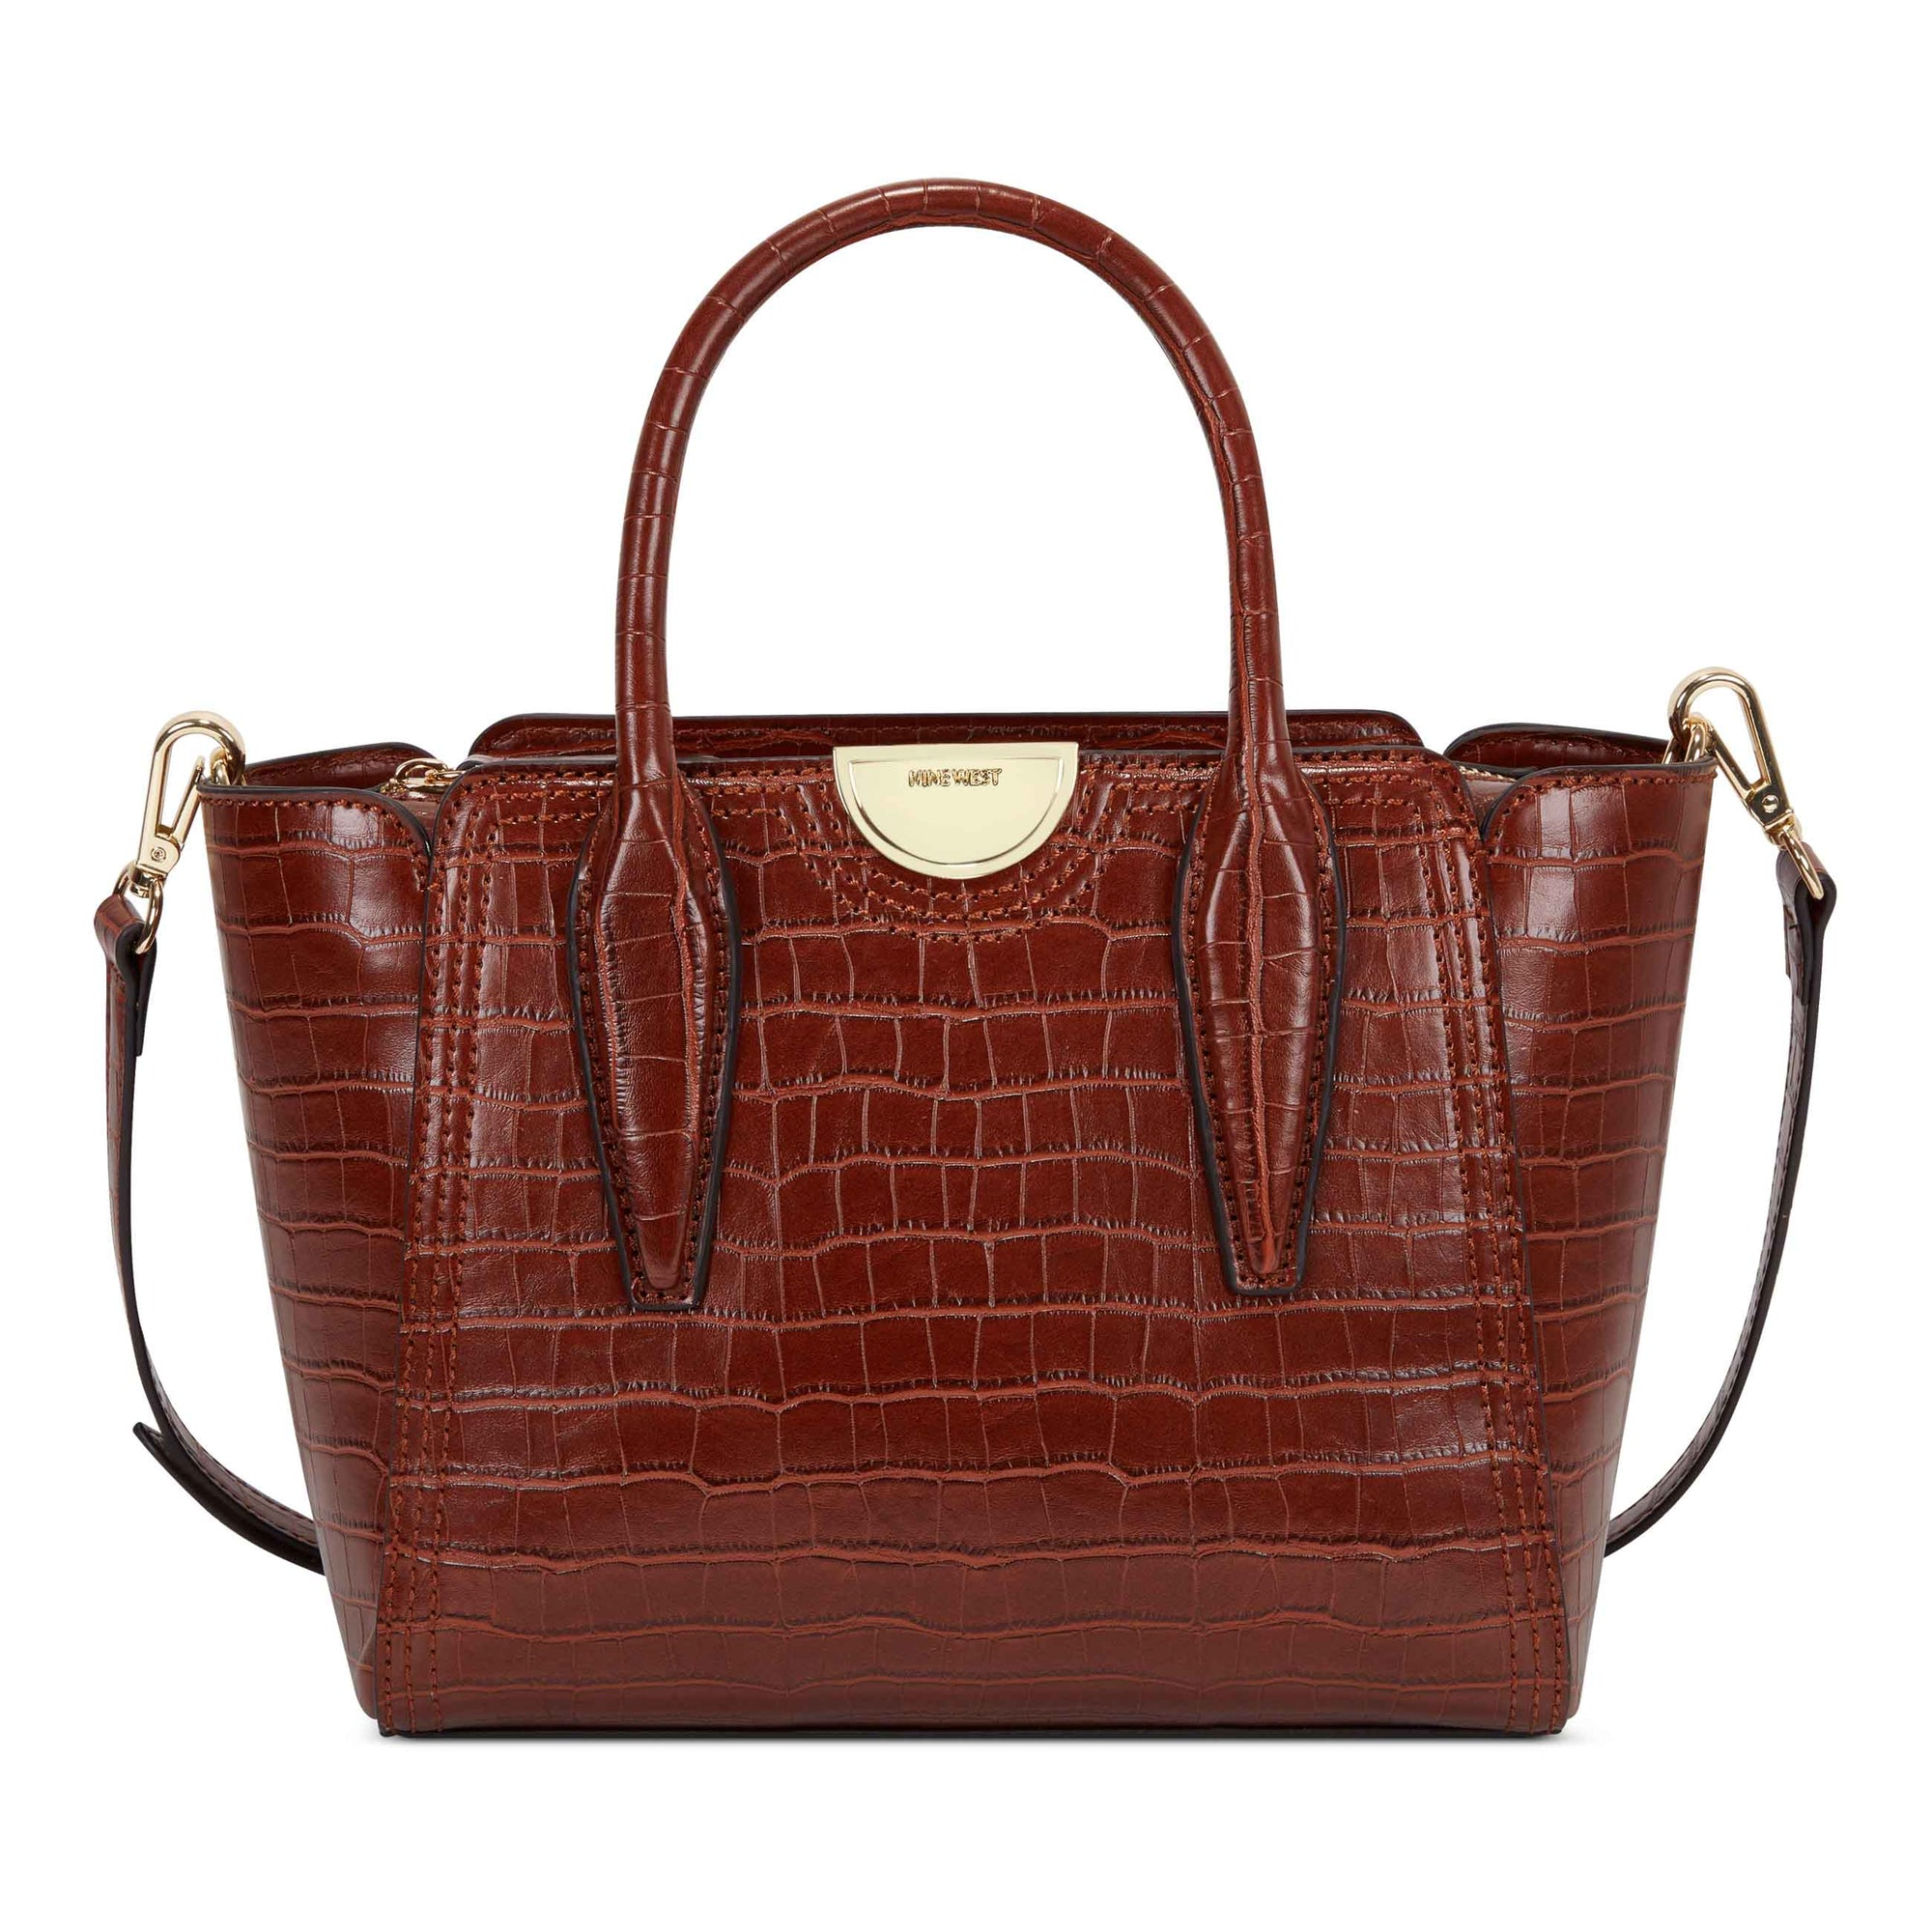 hattie-small-satchel-in-cognac